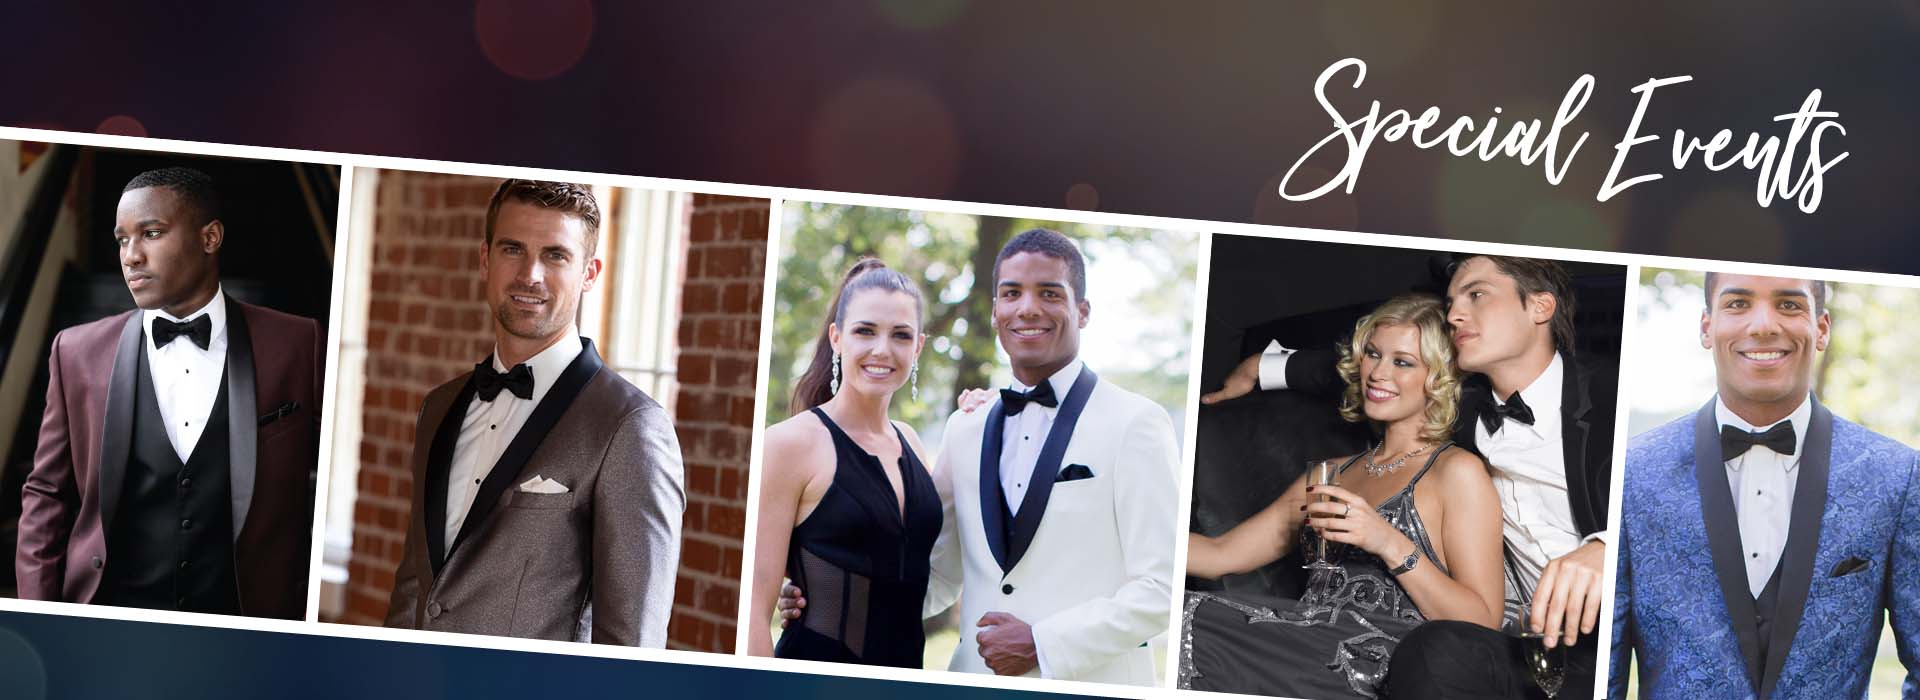 Special Events header image photo style